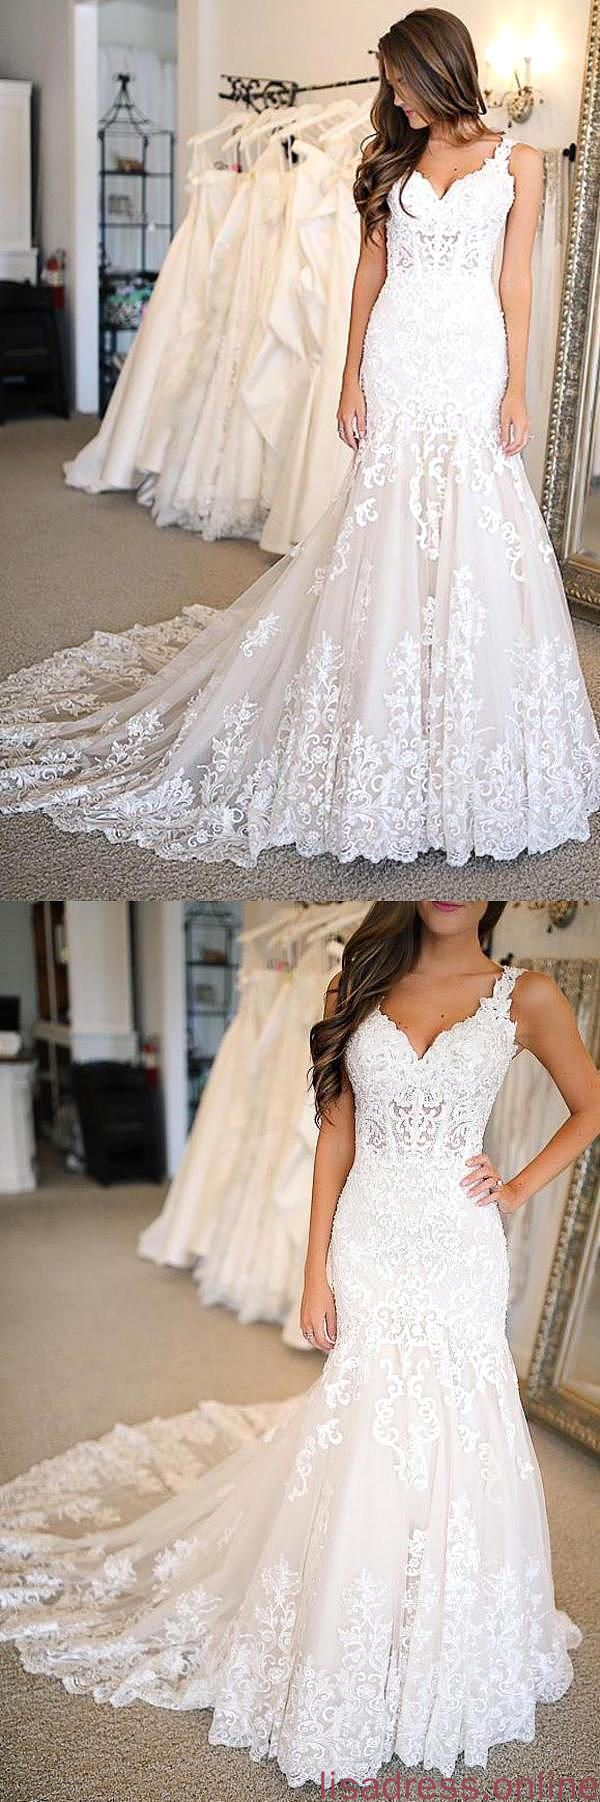 Mermaid Lace Applique Sweetheart Ivory Wedding Dresses Long Wedding XHQPST12775 – Products